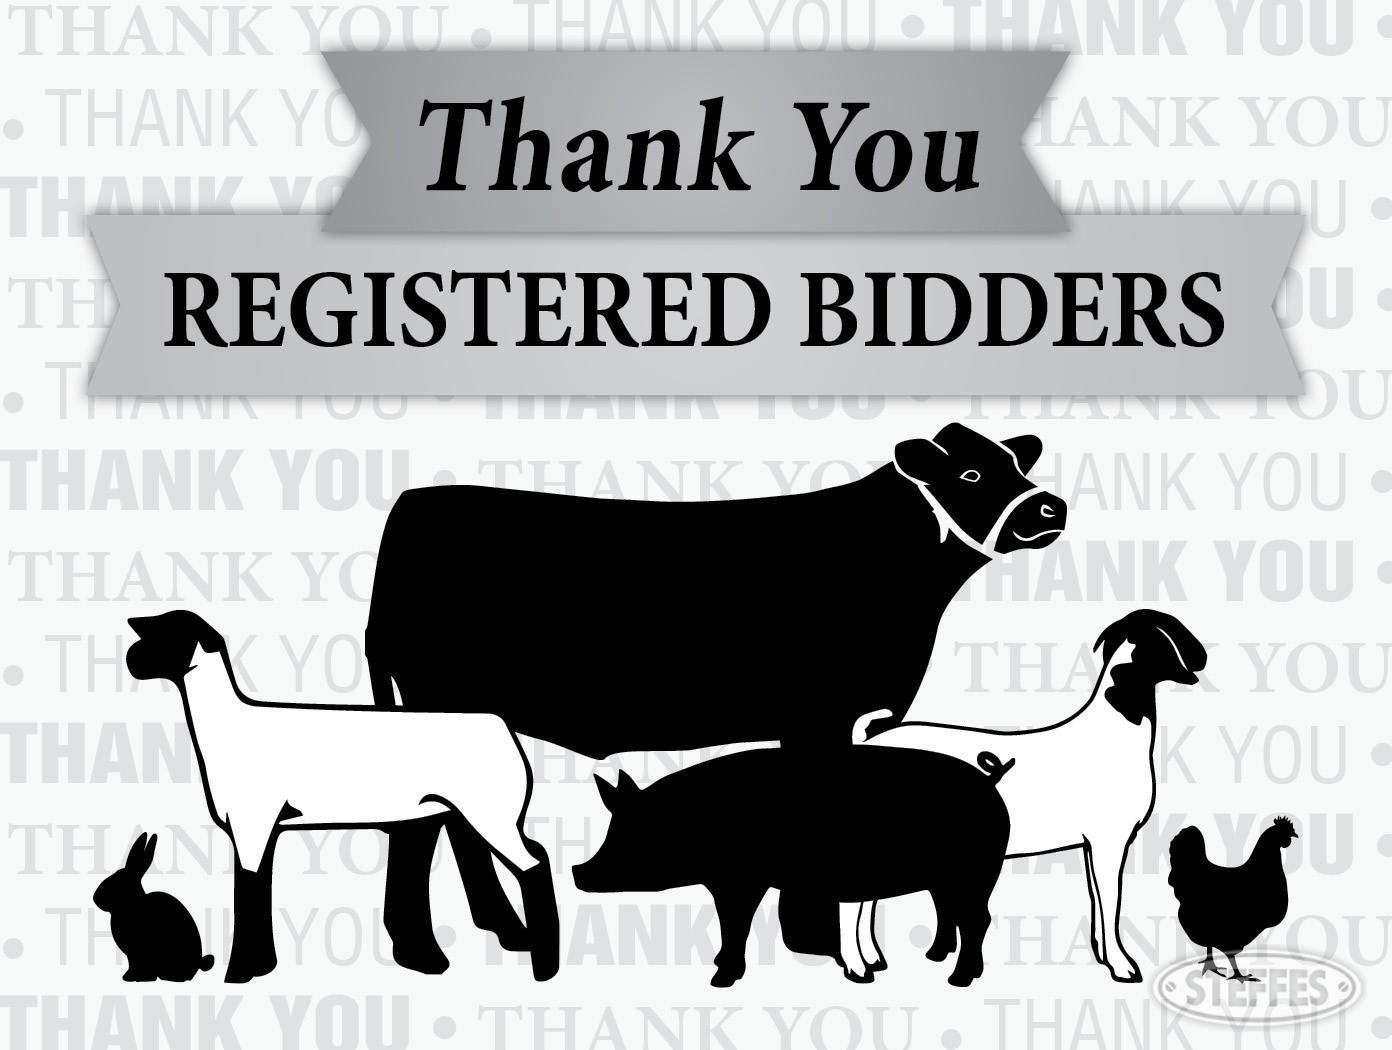 Registered Bidders